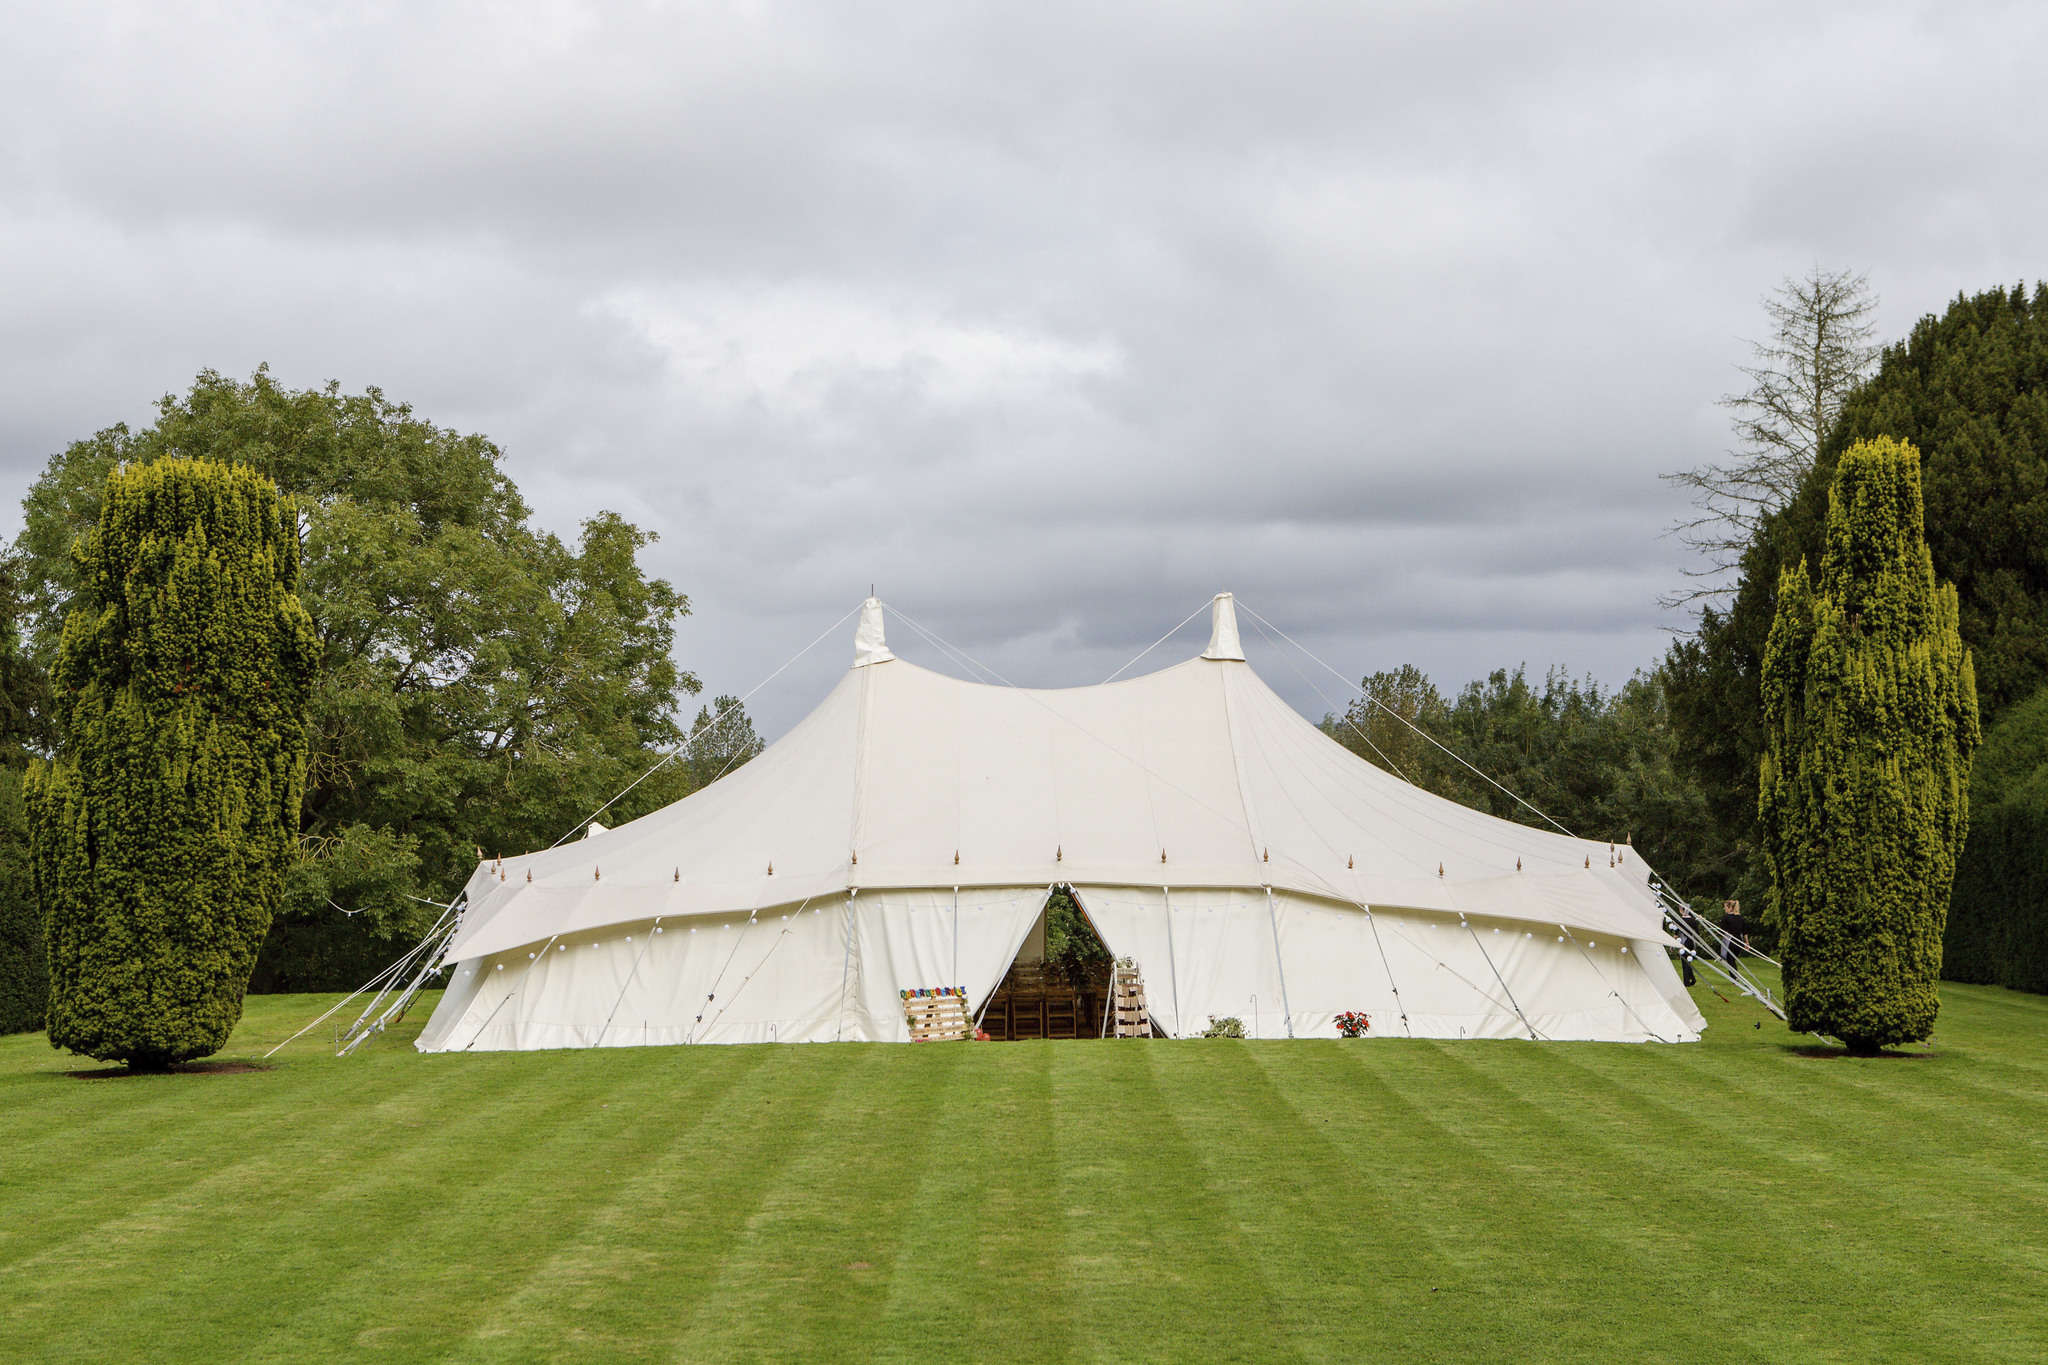 aldby big top tent.jpg